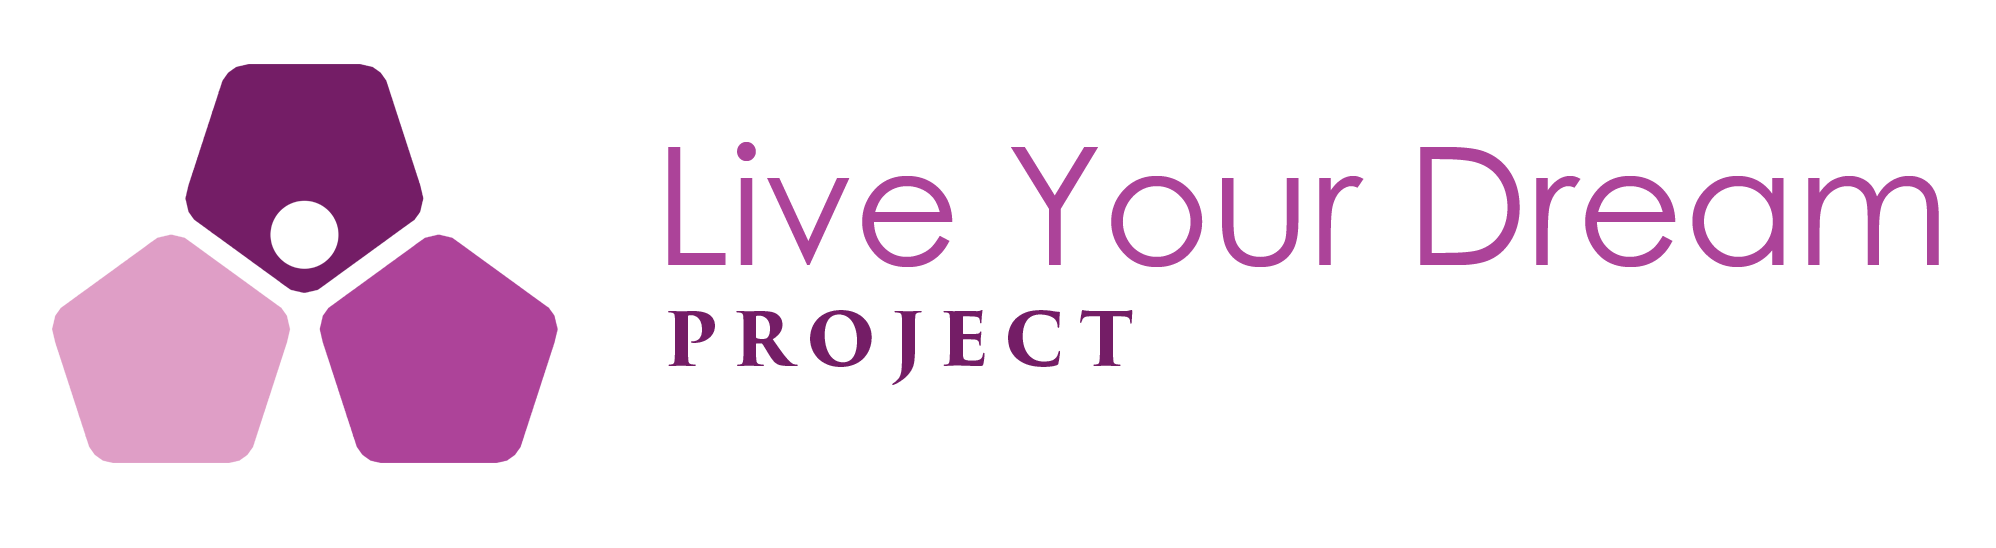 Live Your Dream Project